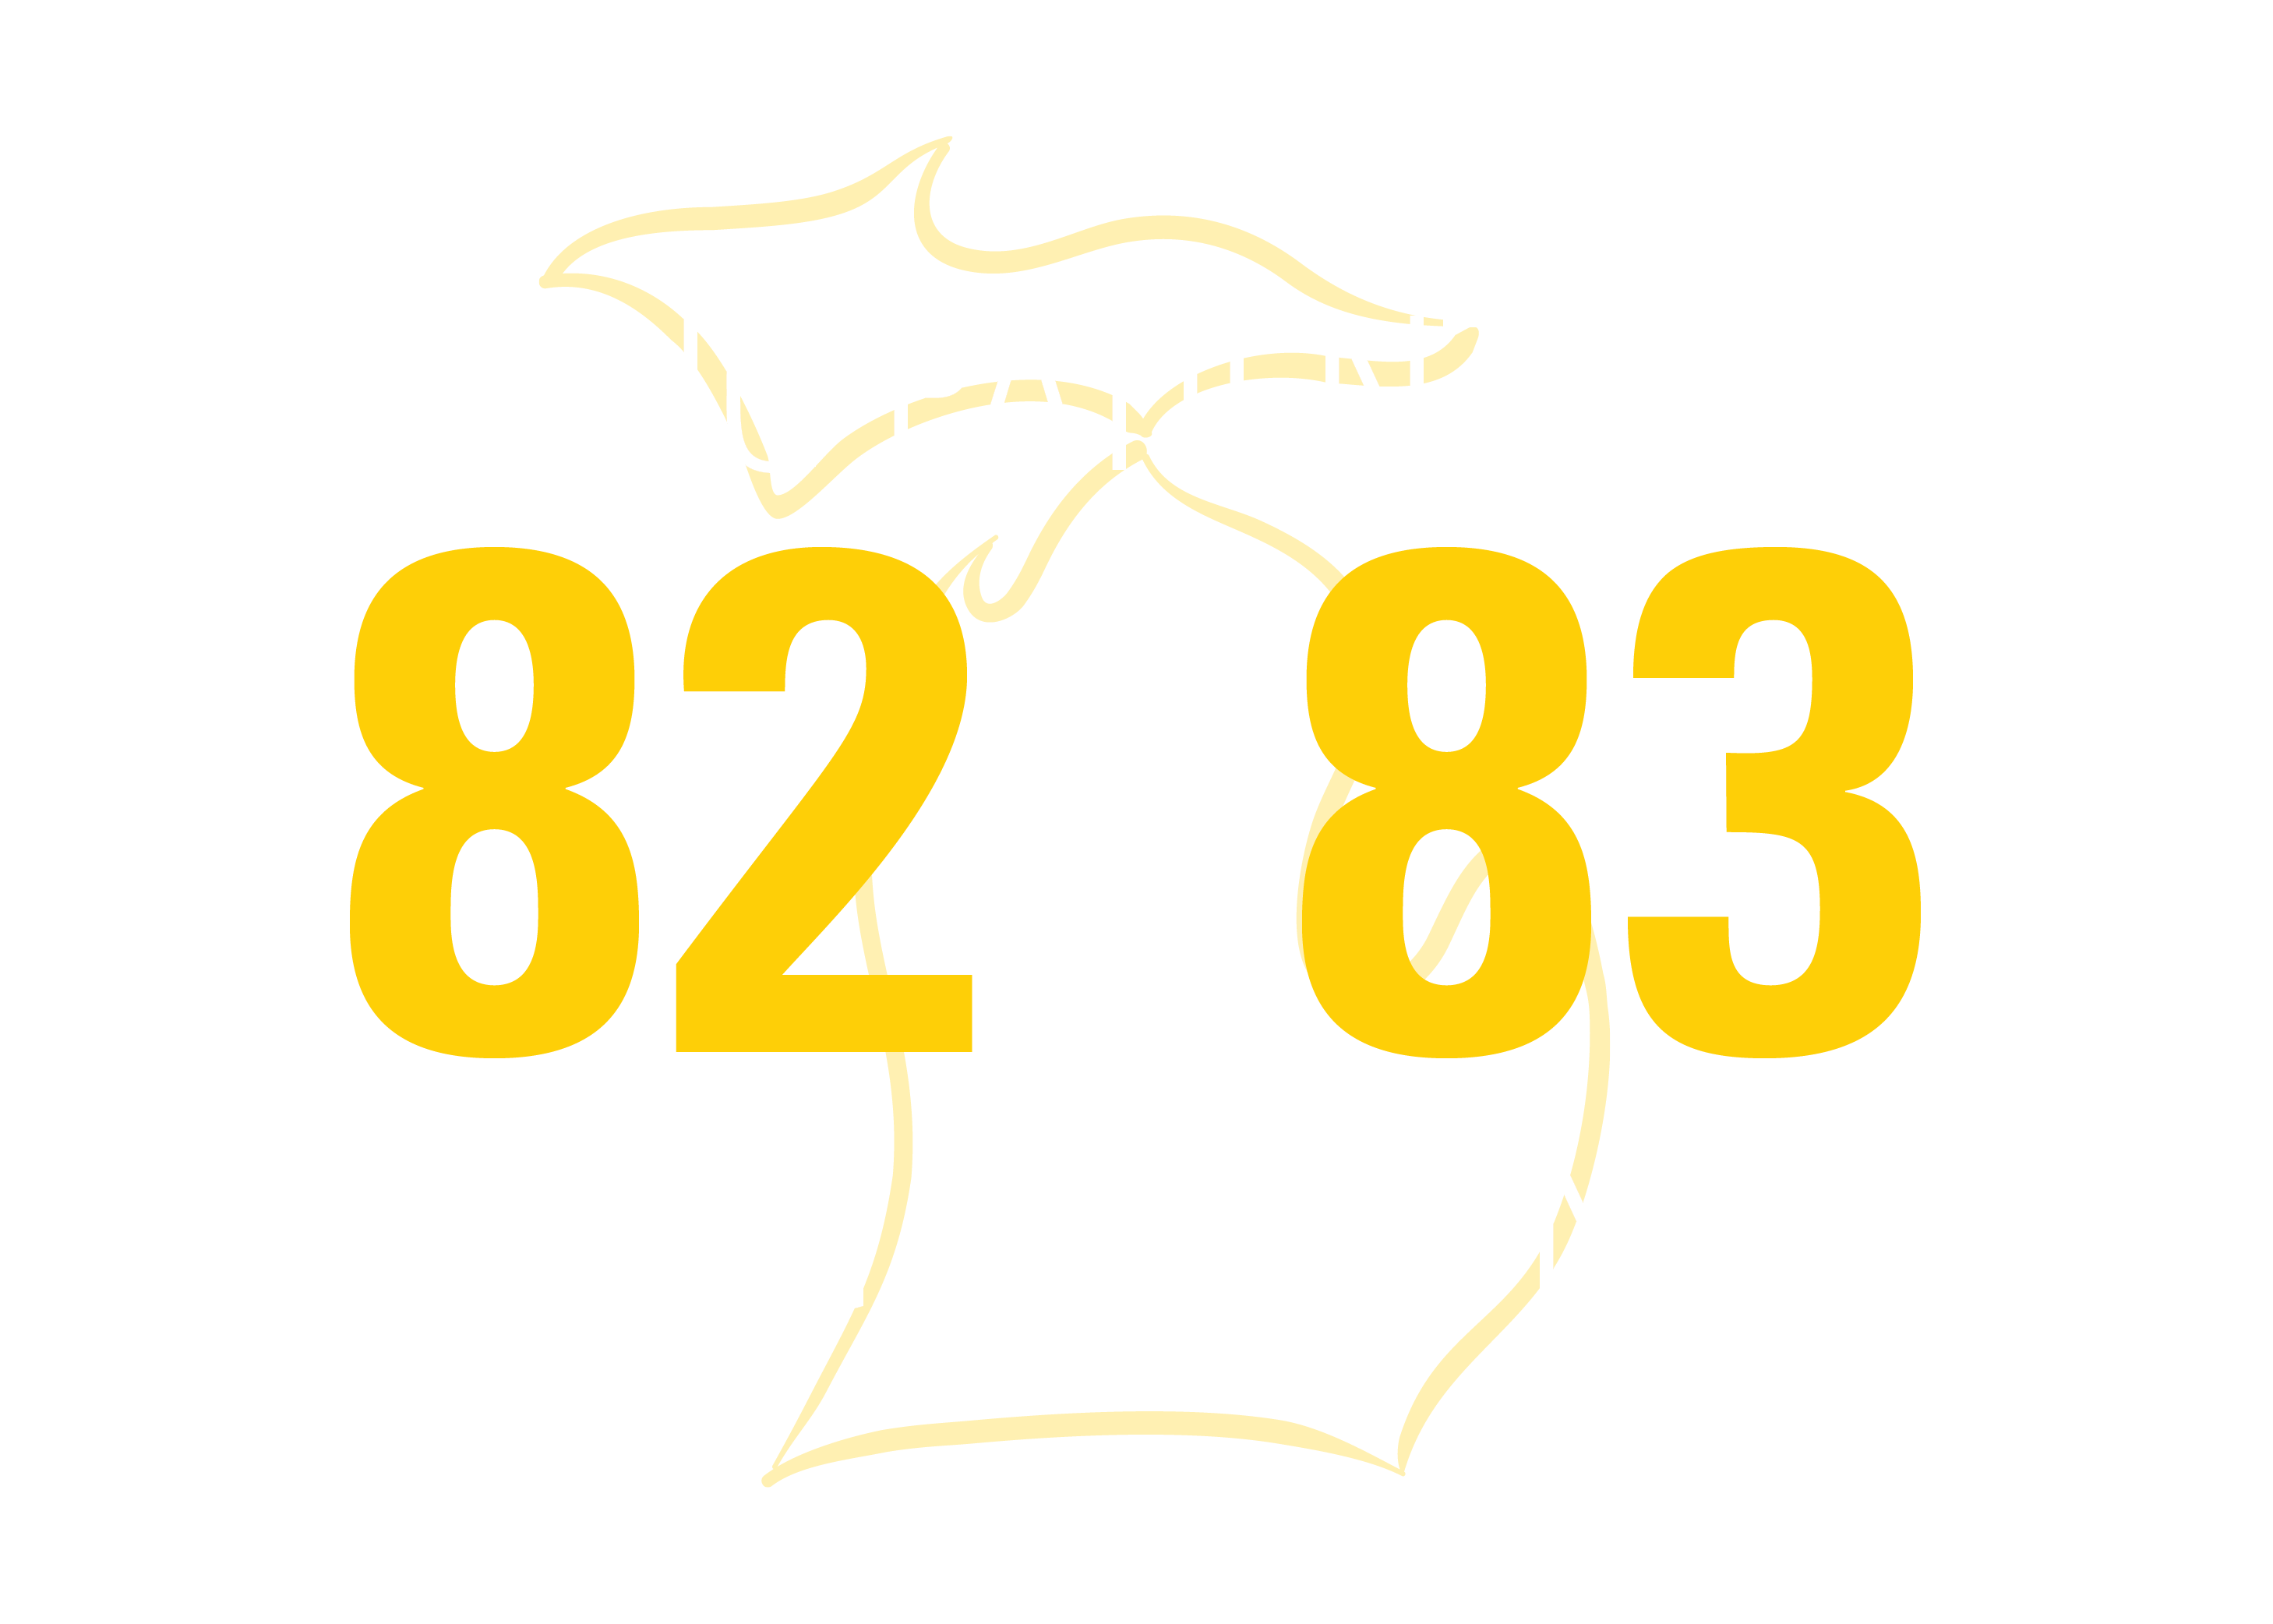 82 of 83 counties in Michigan Served